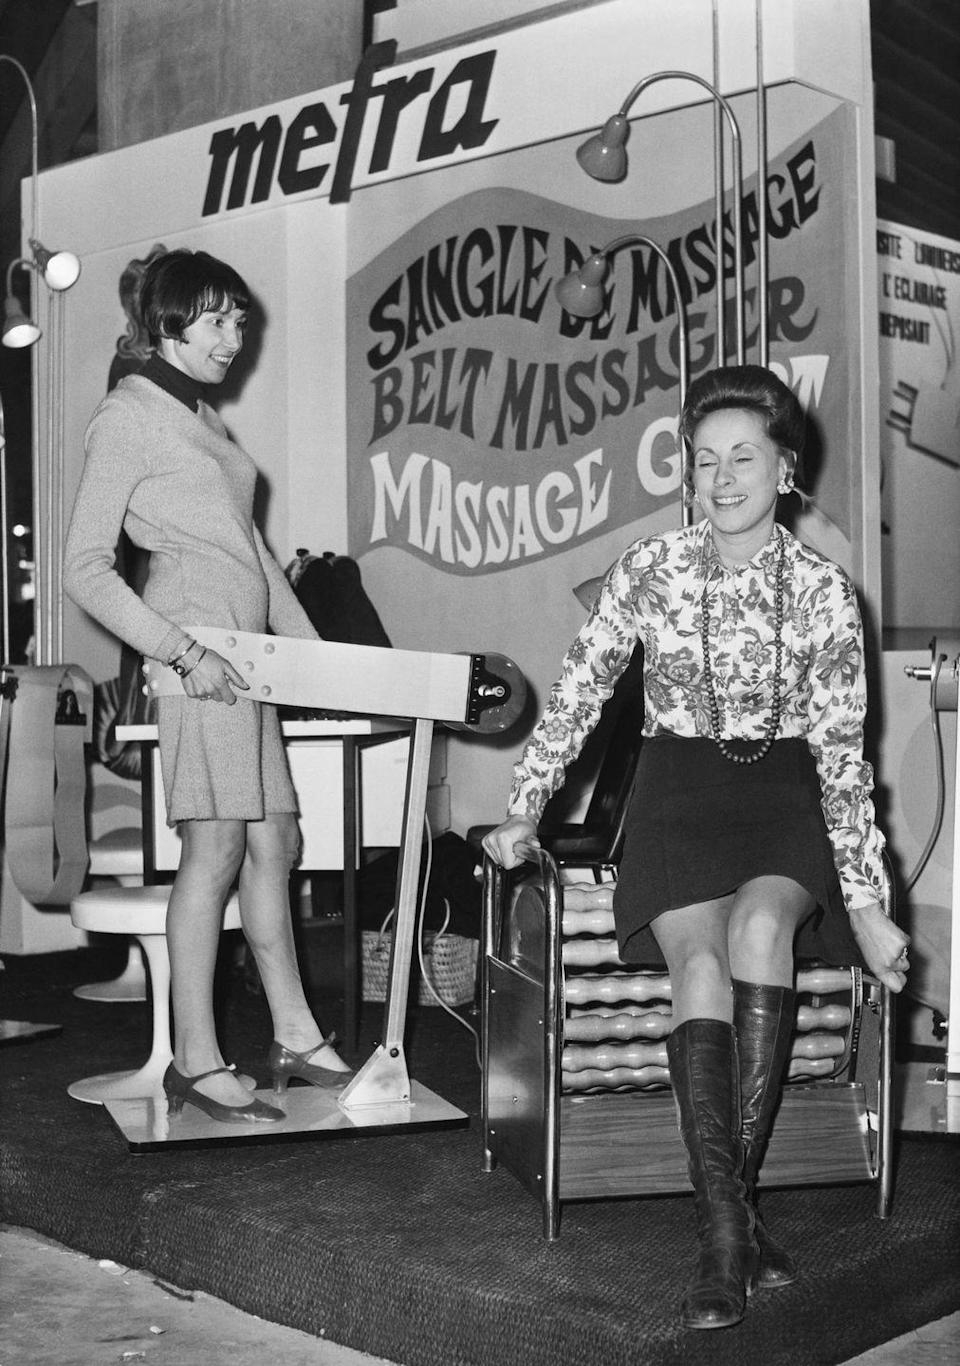 <p>The invention from the 1950s promised to banish stubborn belly fat and was still popular decades later in the 1970s. </p>